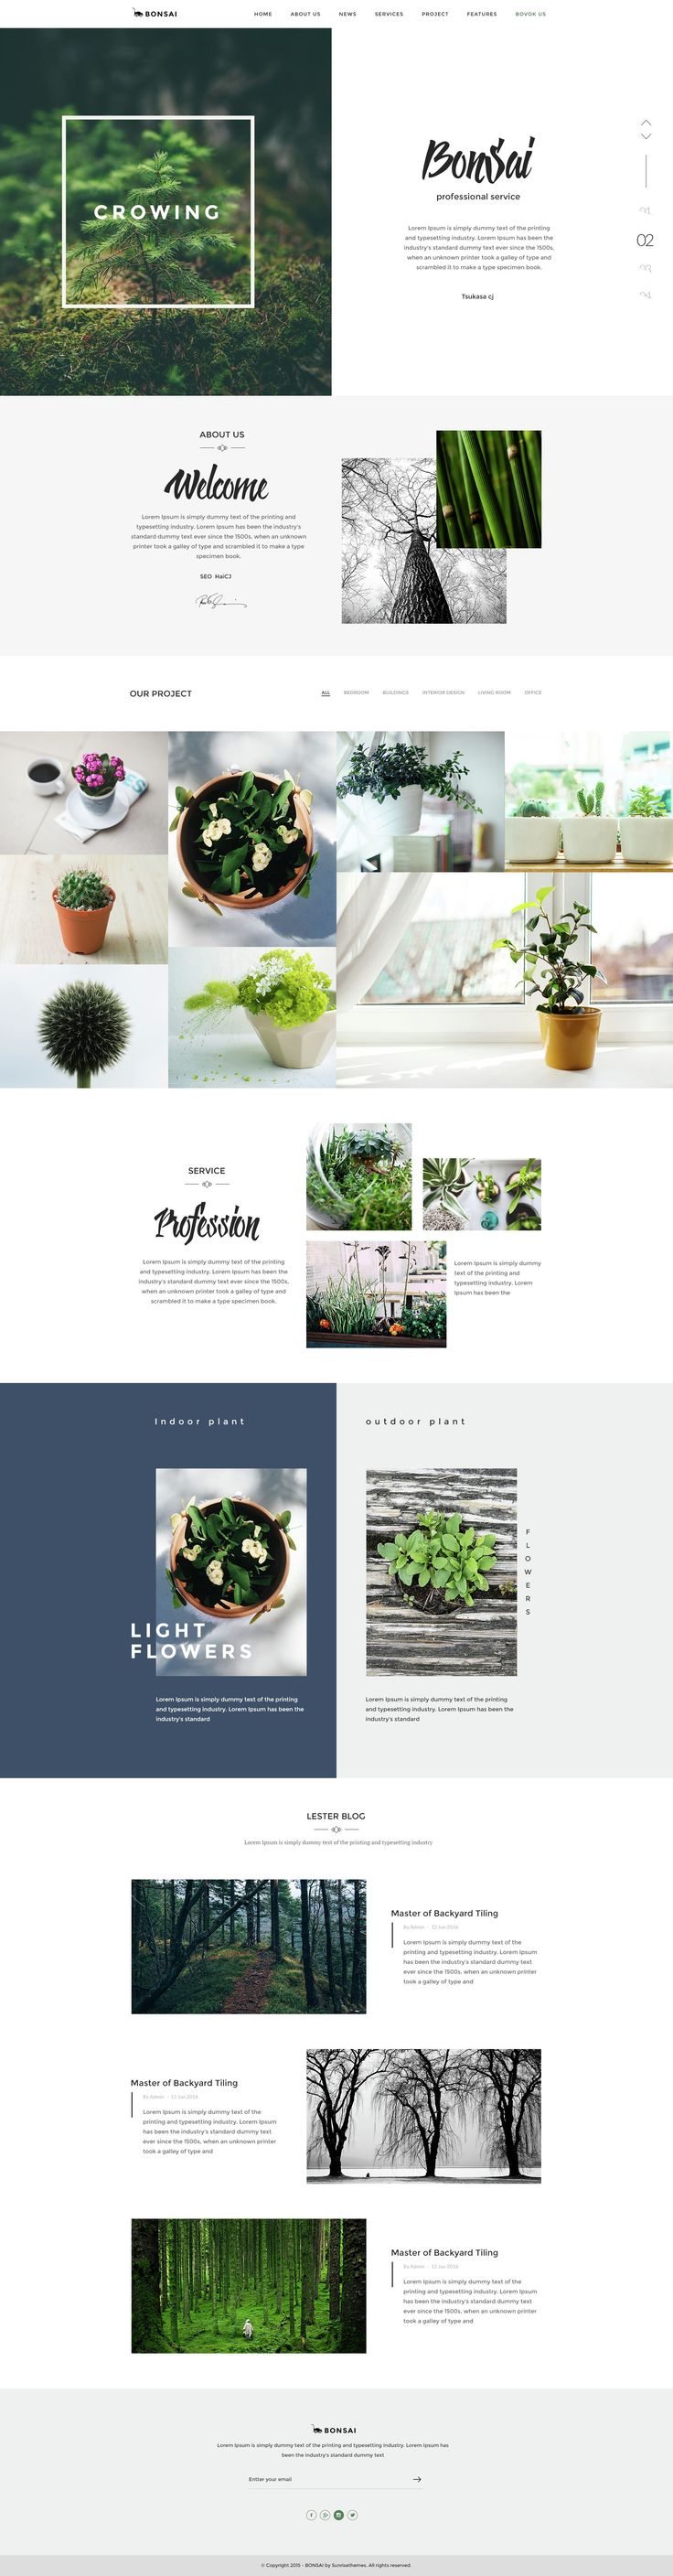 Bonsai - PSD Template for Landscapers & Gardeners Website #flowershop #webdesign #psdtemplate